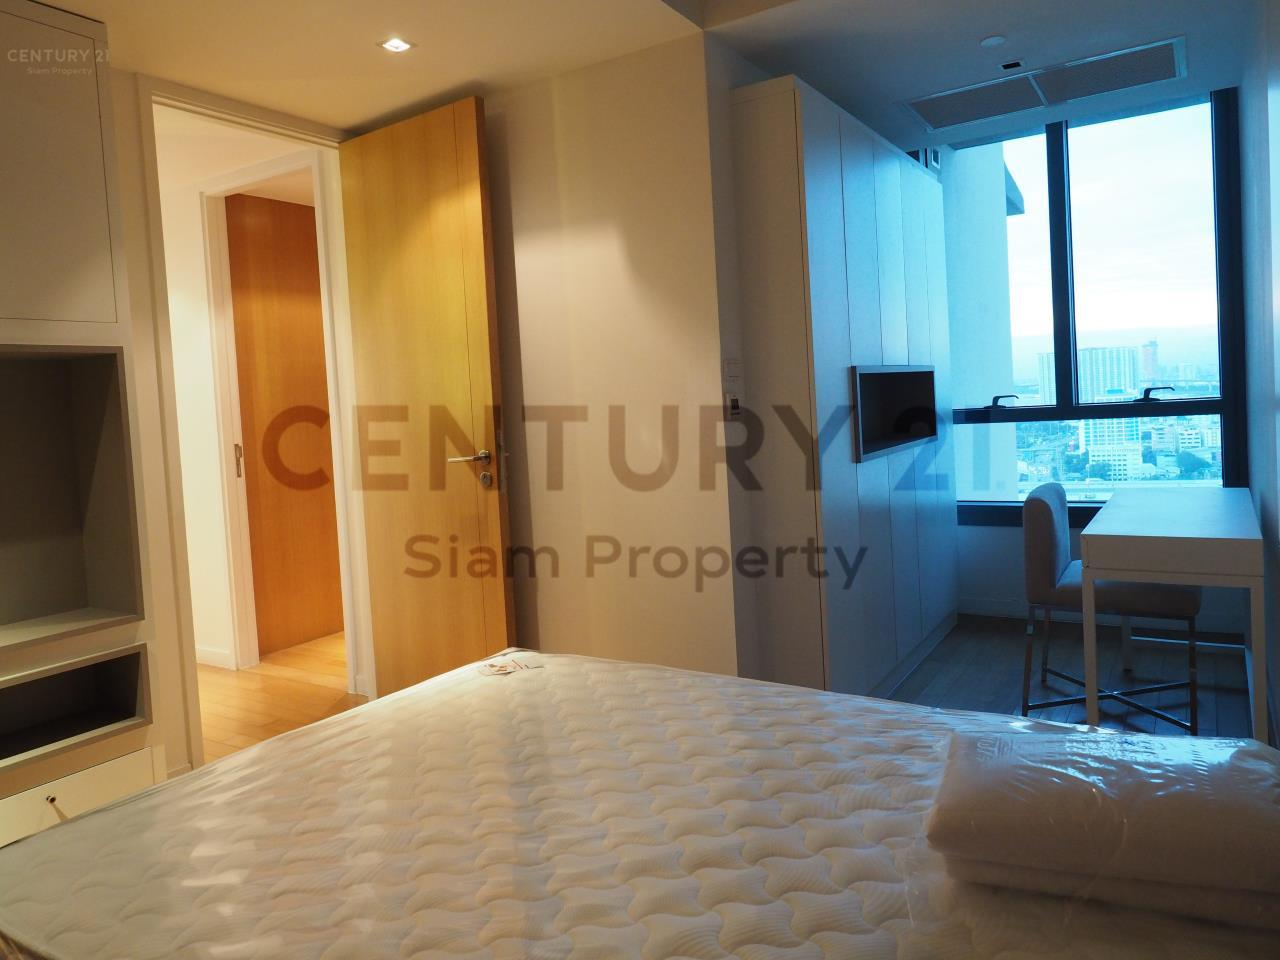 Century21 Siam Property Agency's The Pano 13